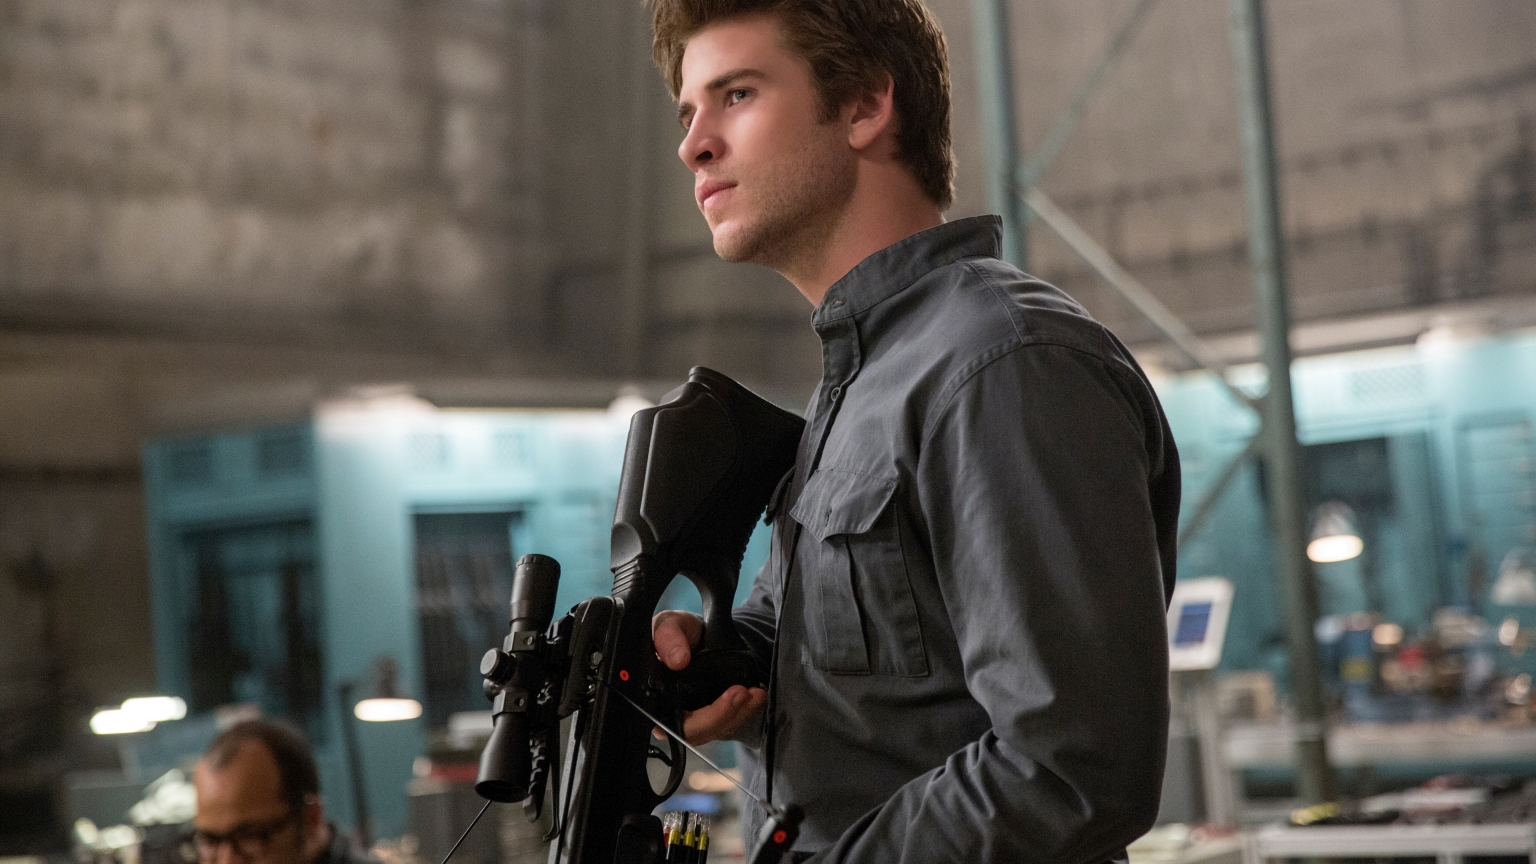 Liam Hemsworth in The Hunger Games for 1536 x 864 HDTV resolution